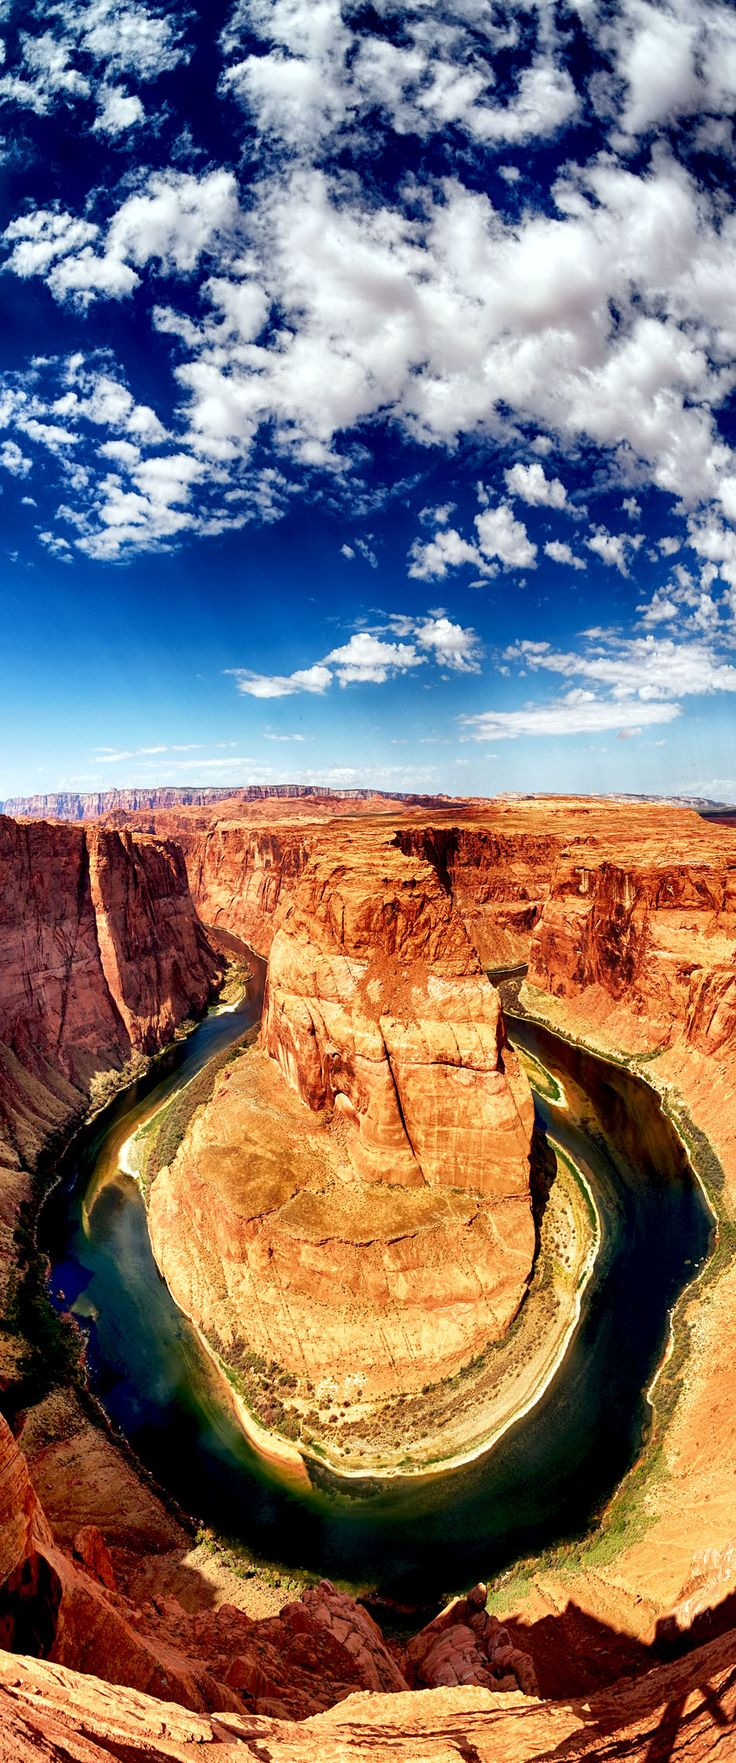 The famous Horse Shoe Bend at Utah, USA | Top 10 Most Visited Countries in the World in 2014